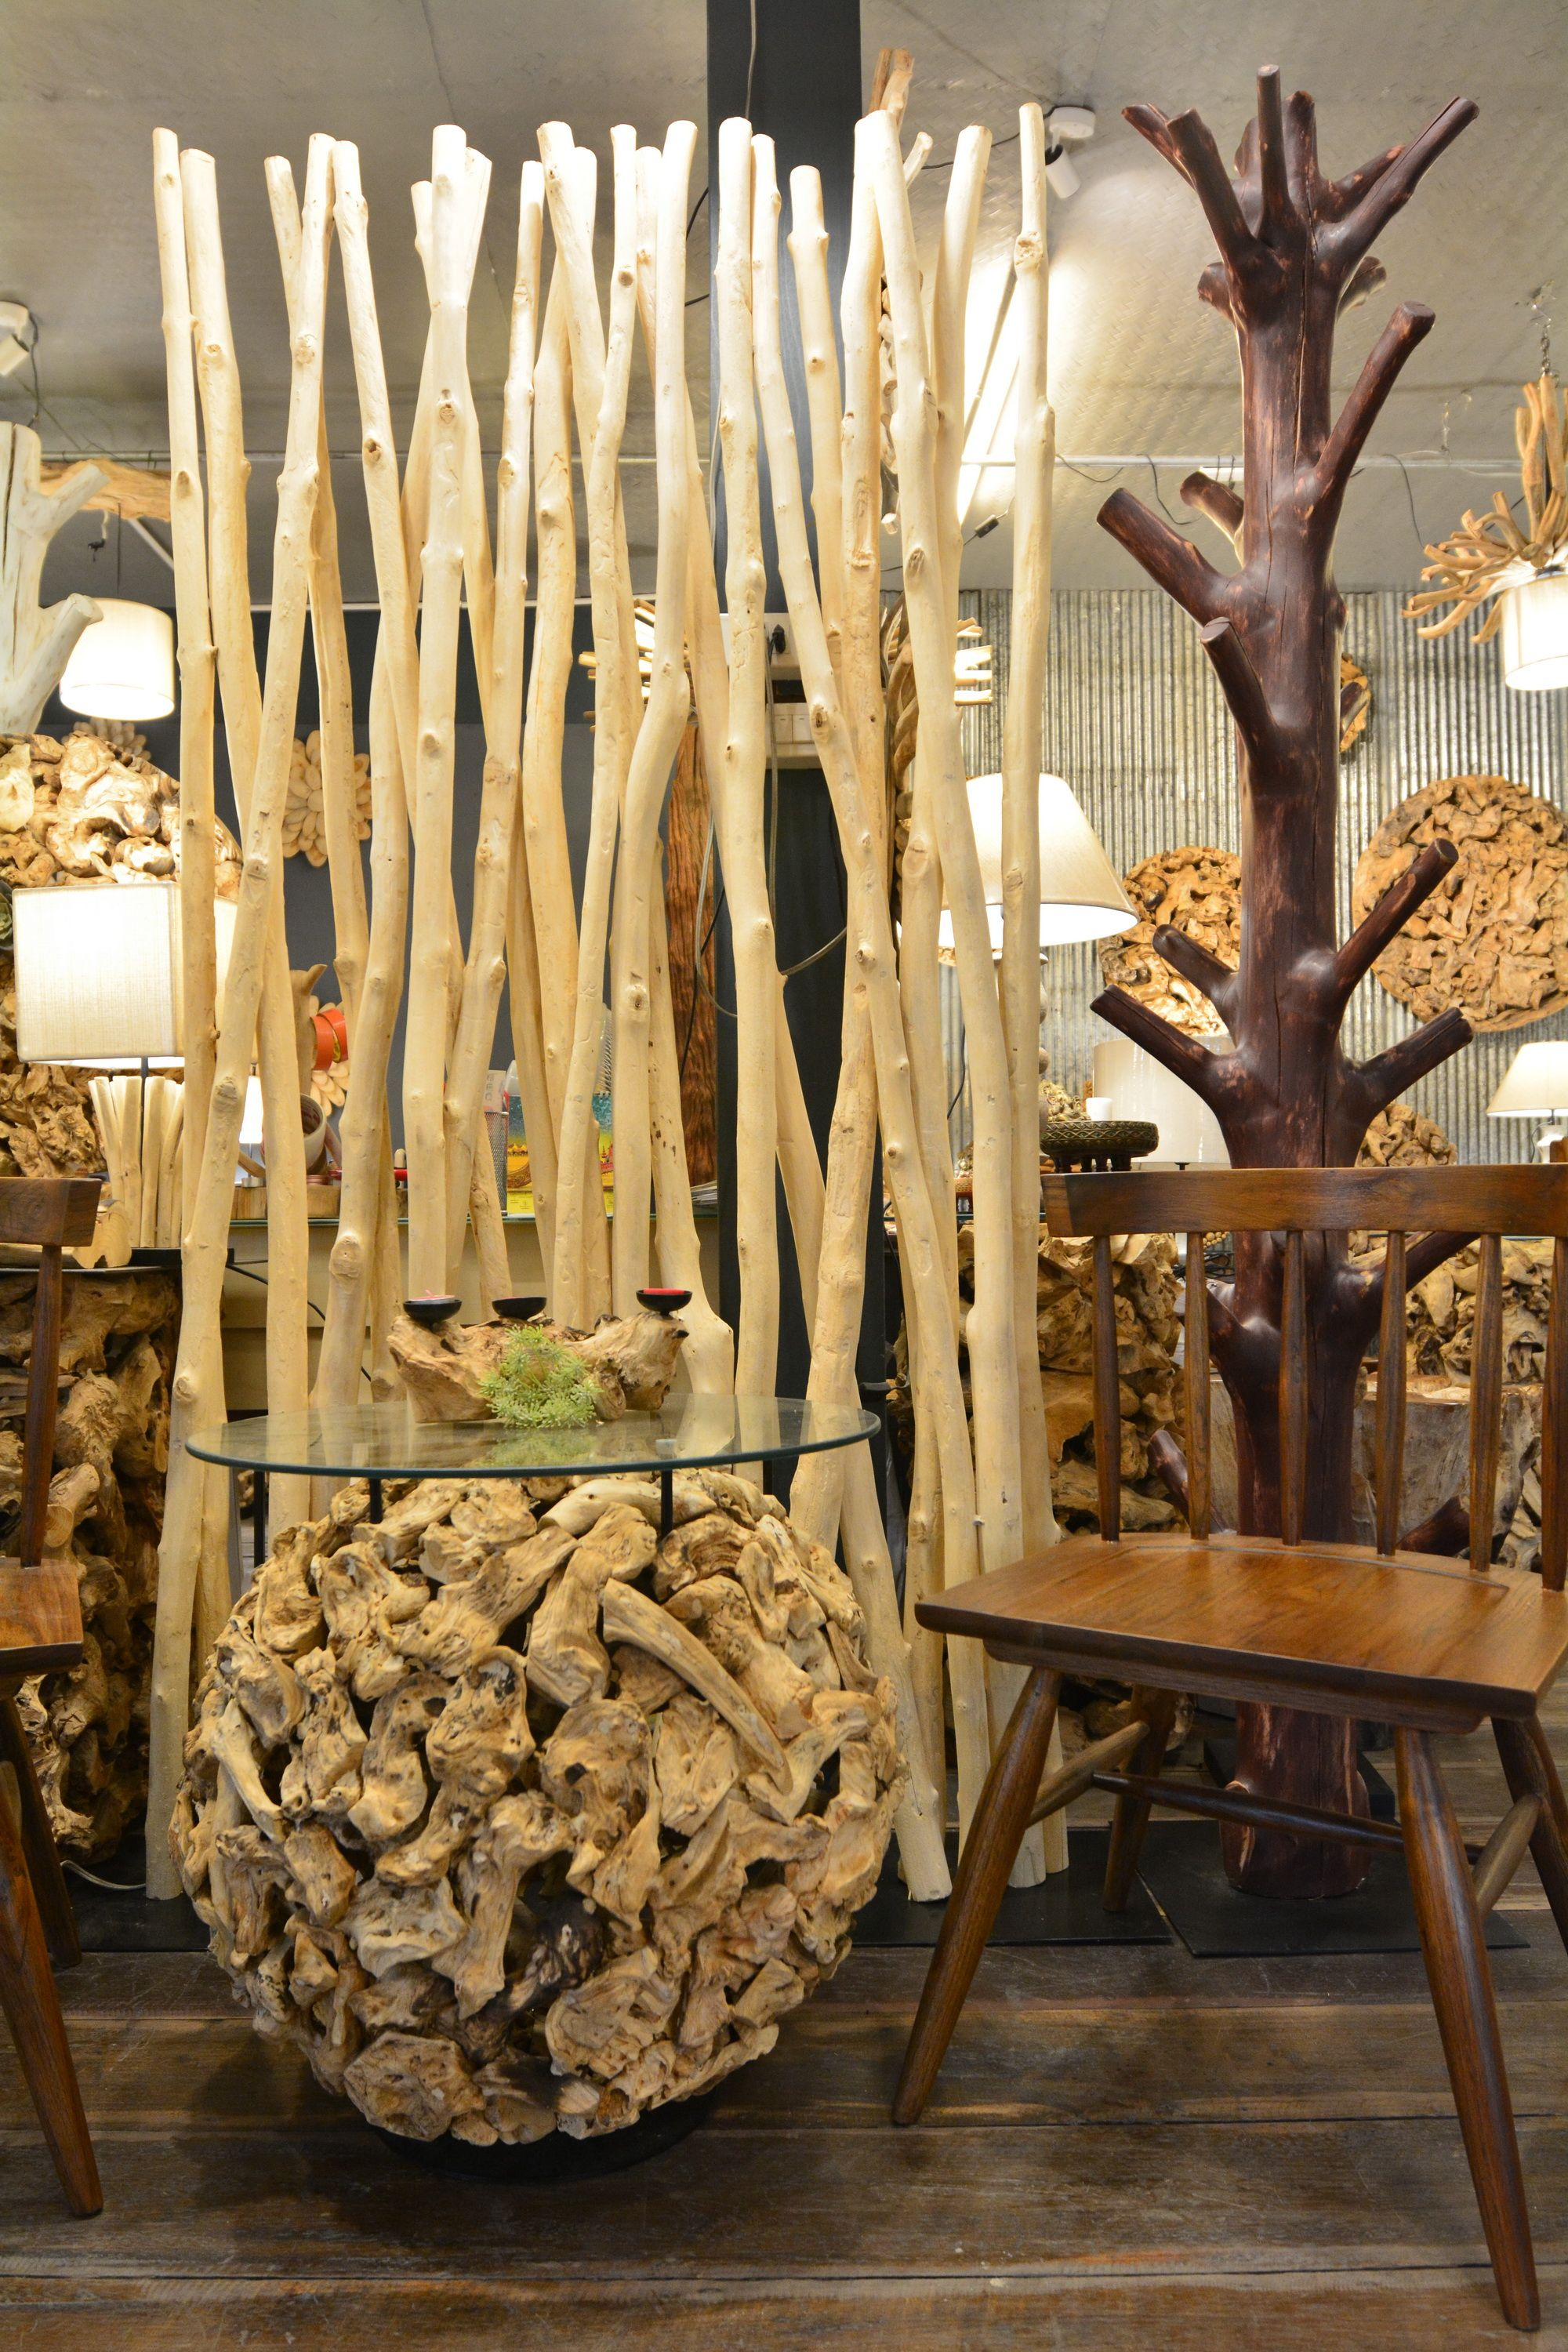 Natural Home Decor From Chiang Mai Thailand For Retail And Wholesale